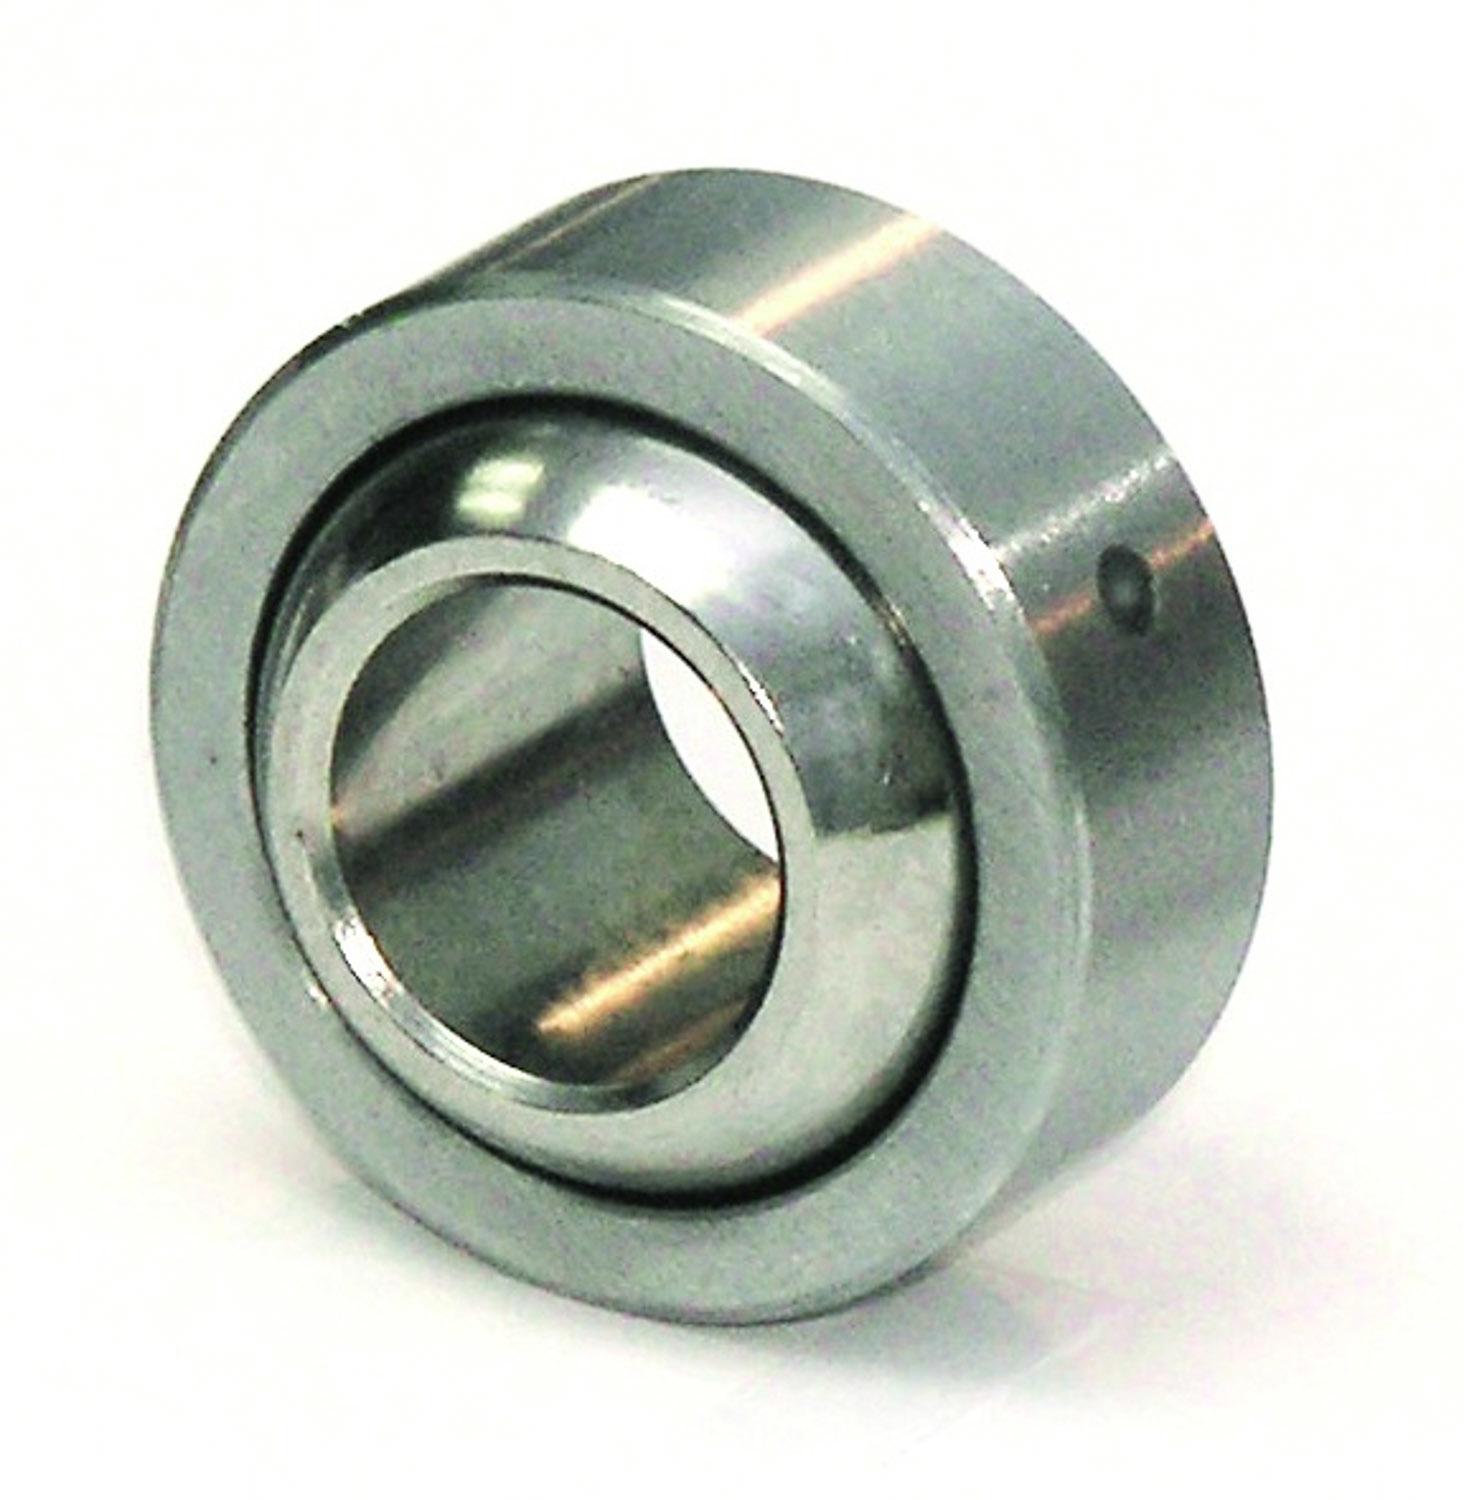 AFCO Racing Products 1000 Spherical Bearing, 1/2 in ID, 5/8 in Thick, PTFE Lined, Steel, Each